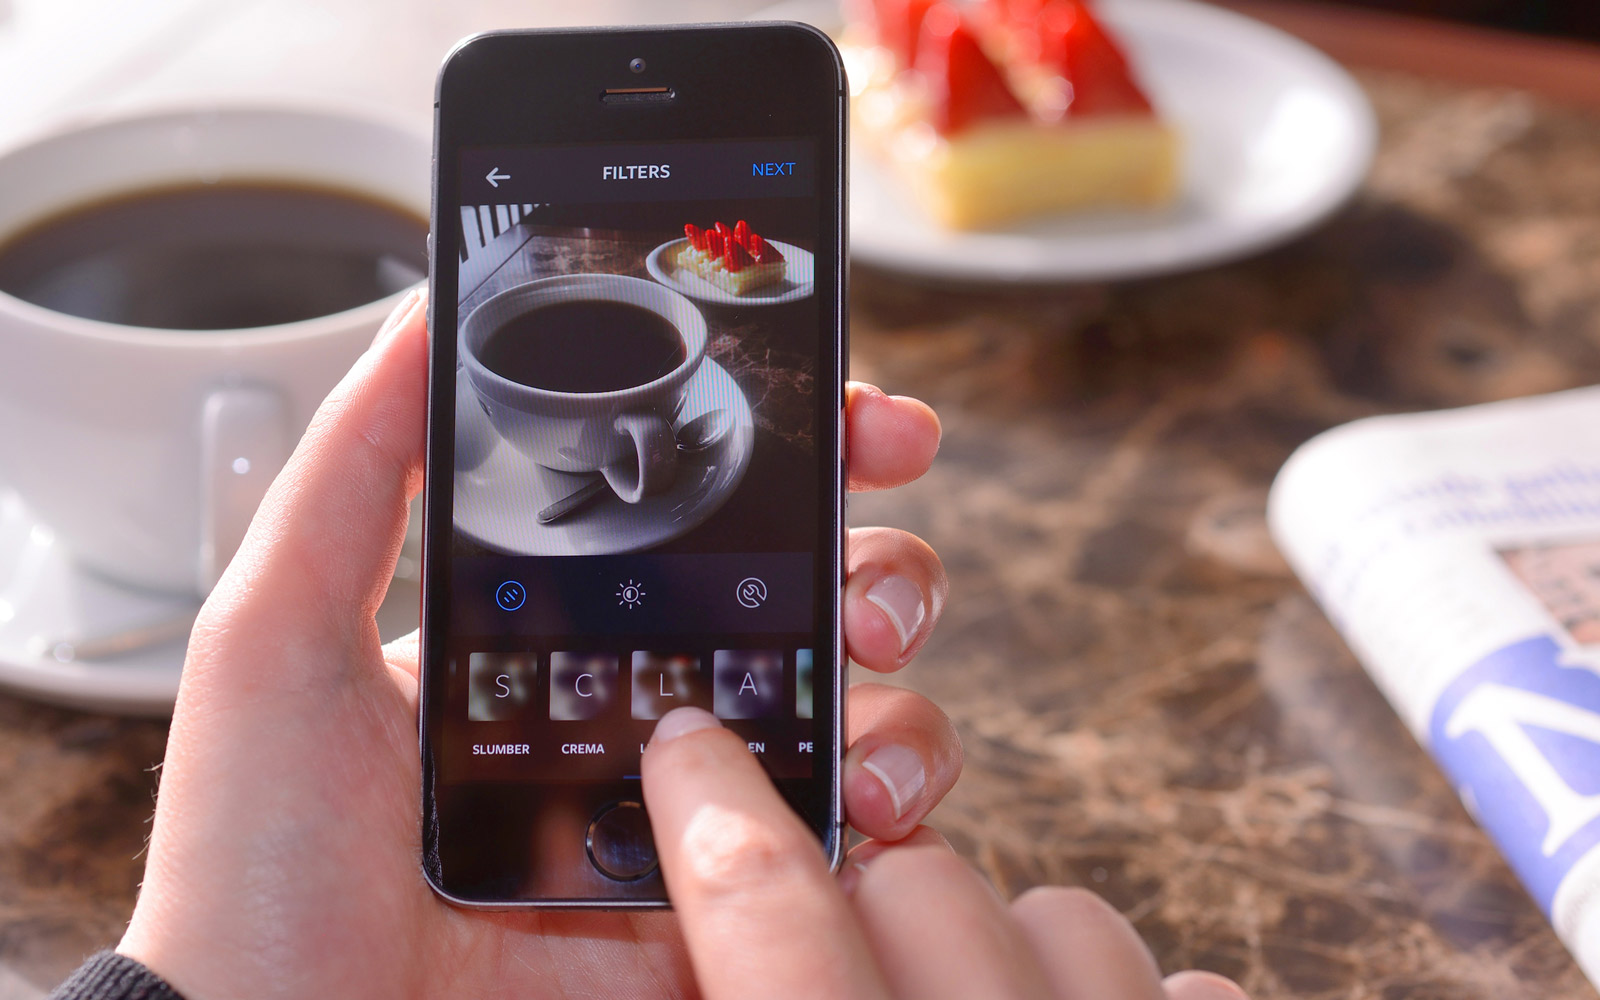 Taking food photo with Instagram